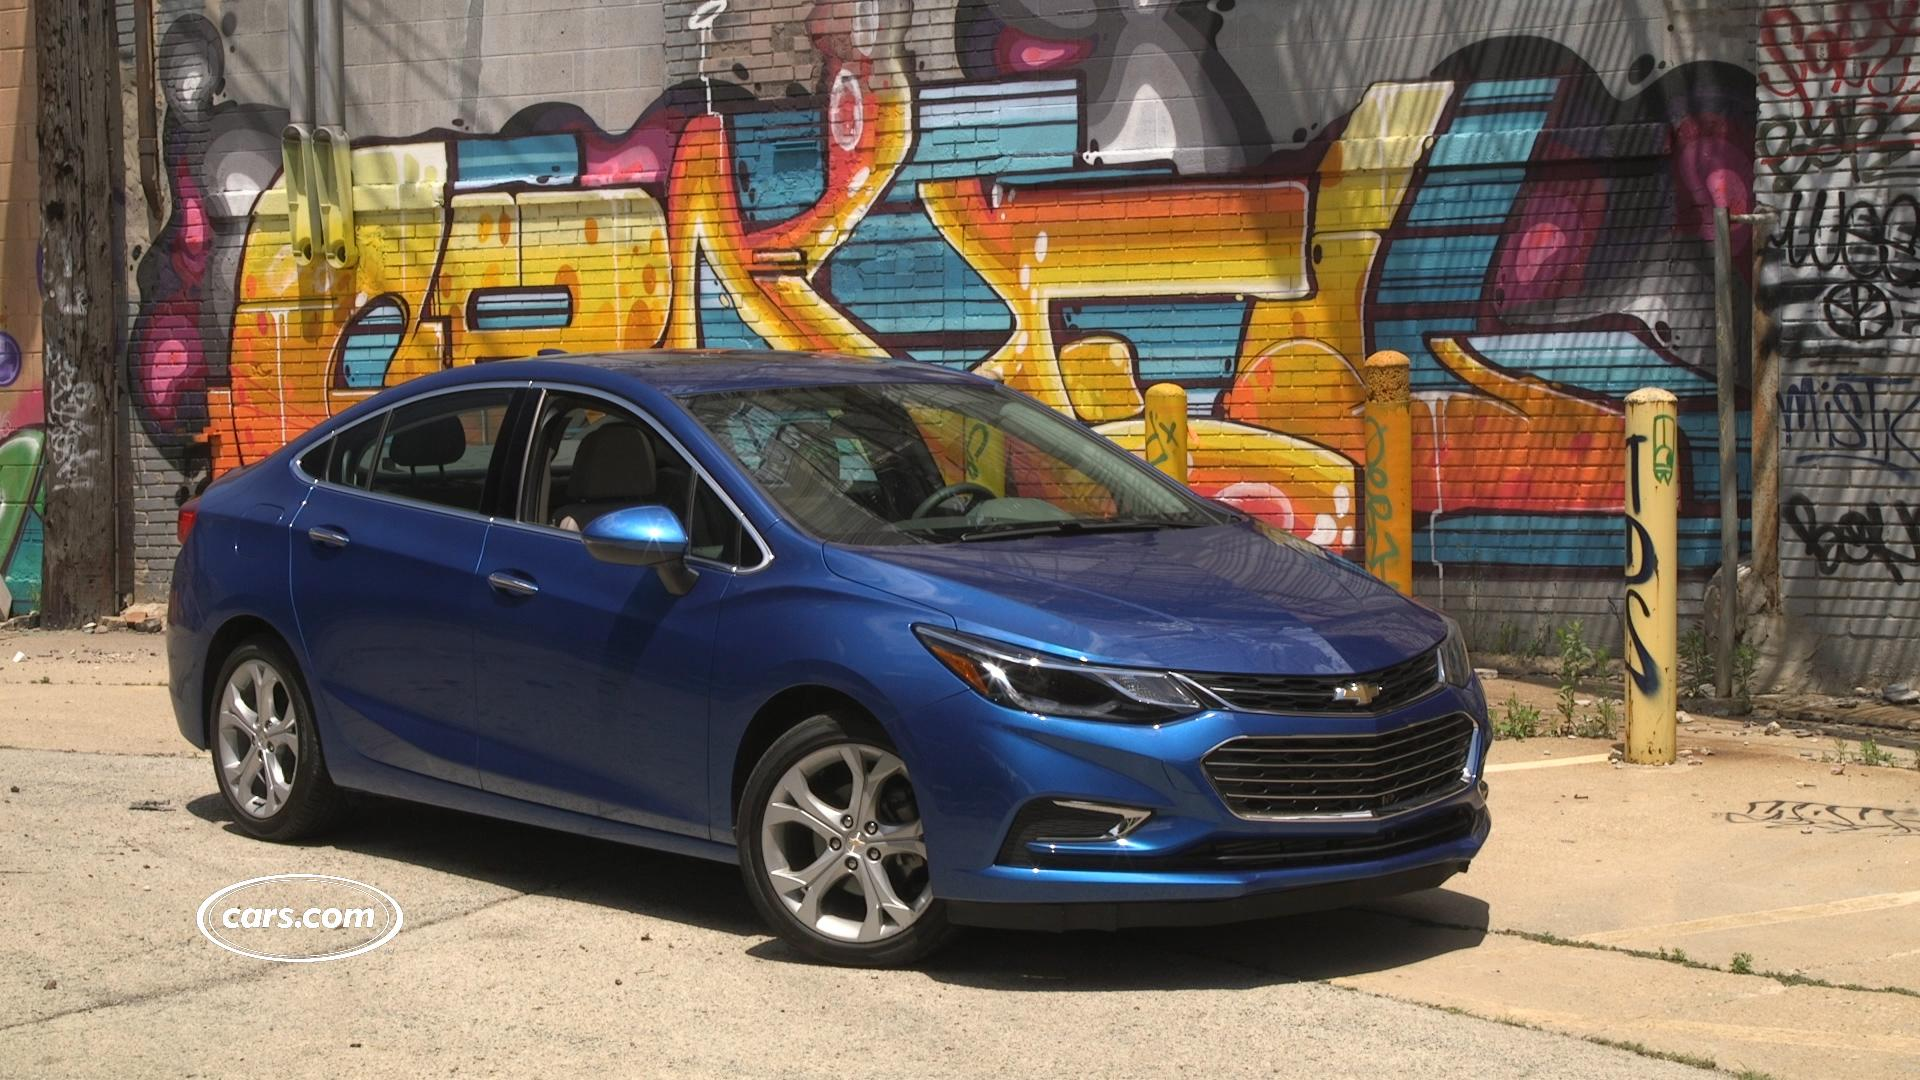 2016 Chevrolet Cruze - For every turn, there's cars com